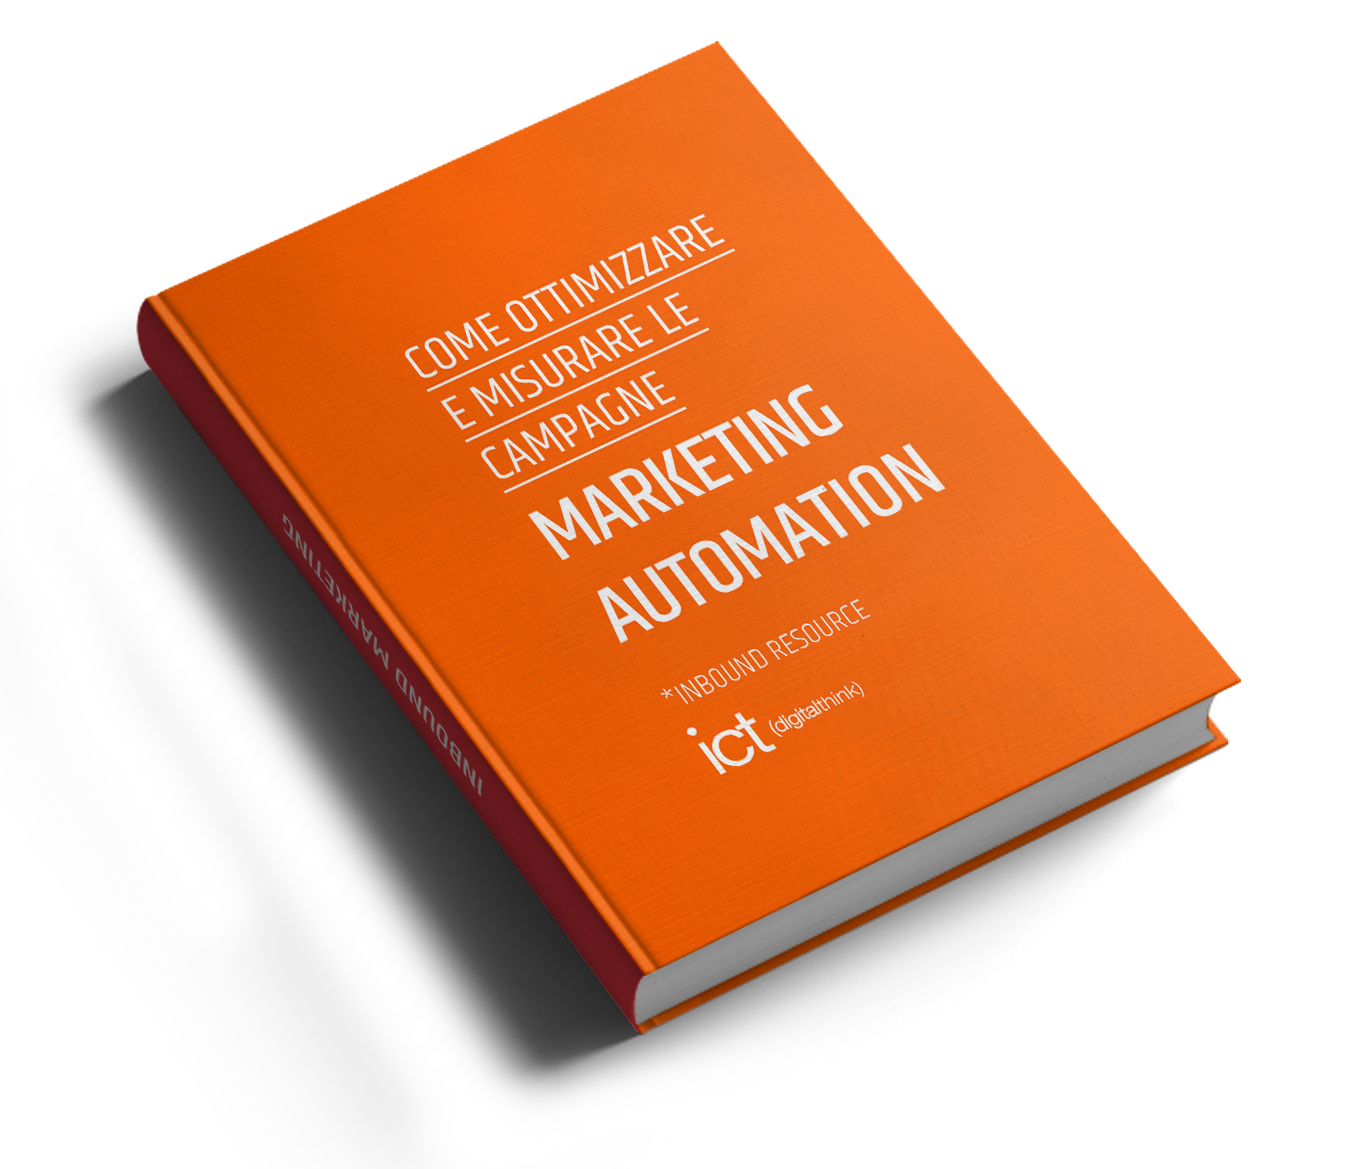 COME OTTIMIZZARE LA MARKETING AUTOMATION